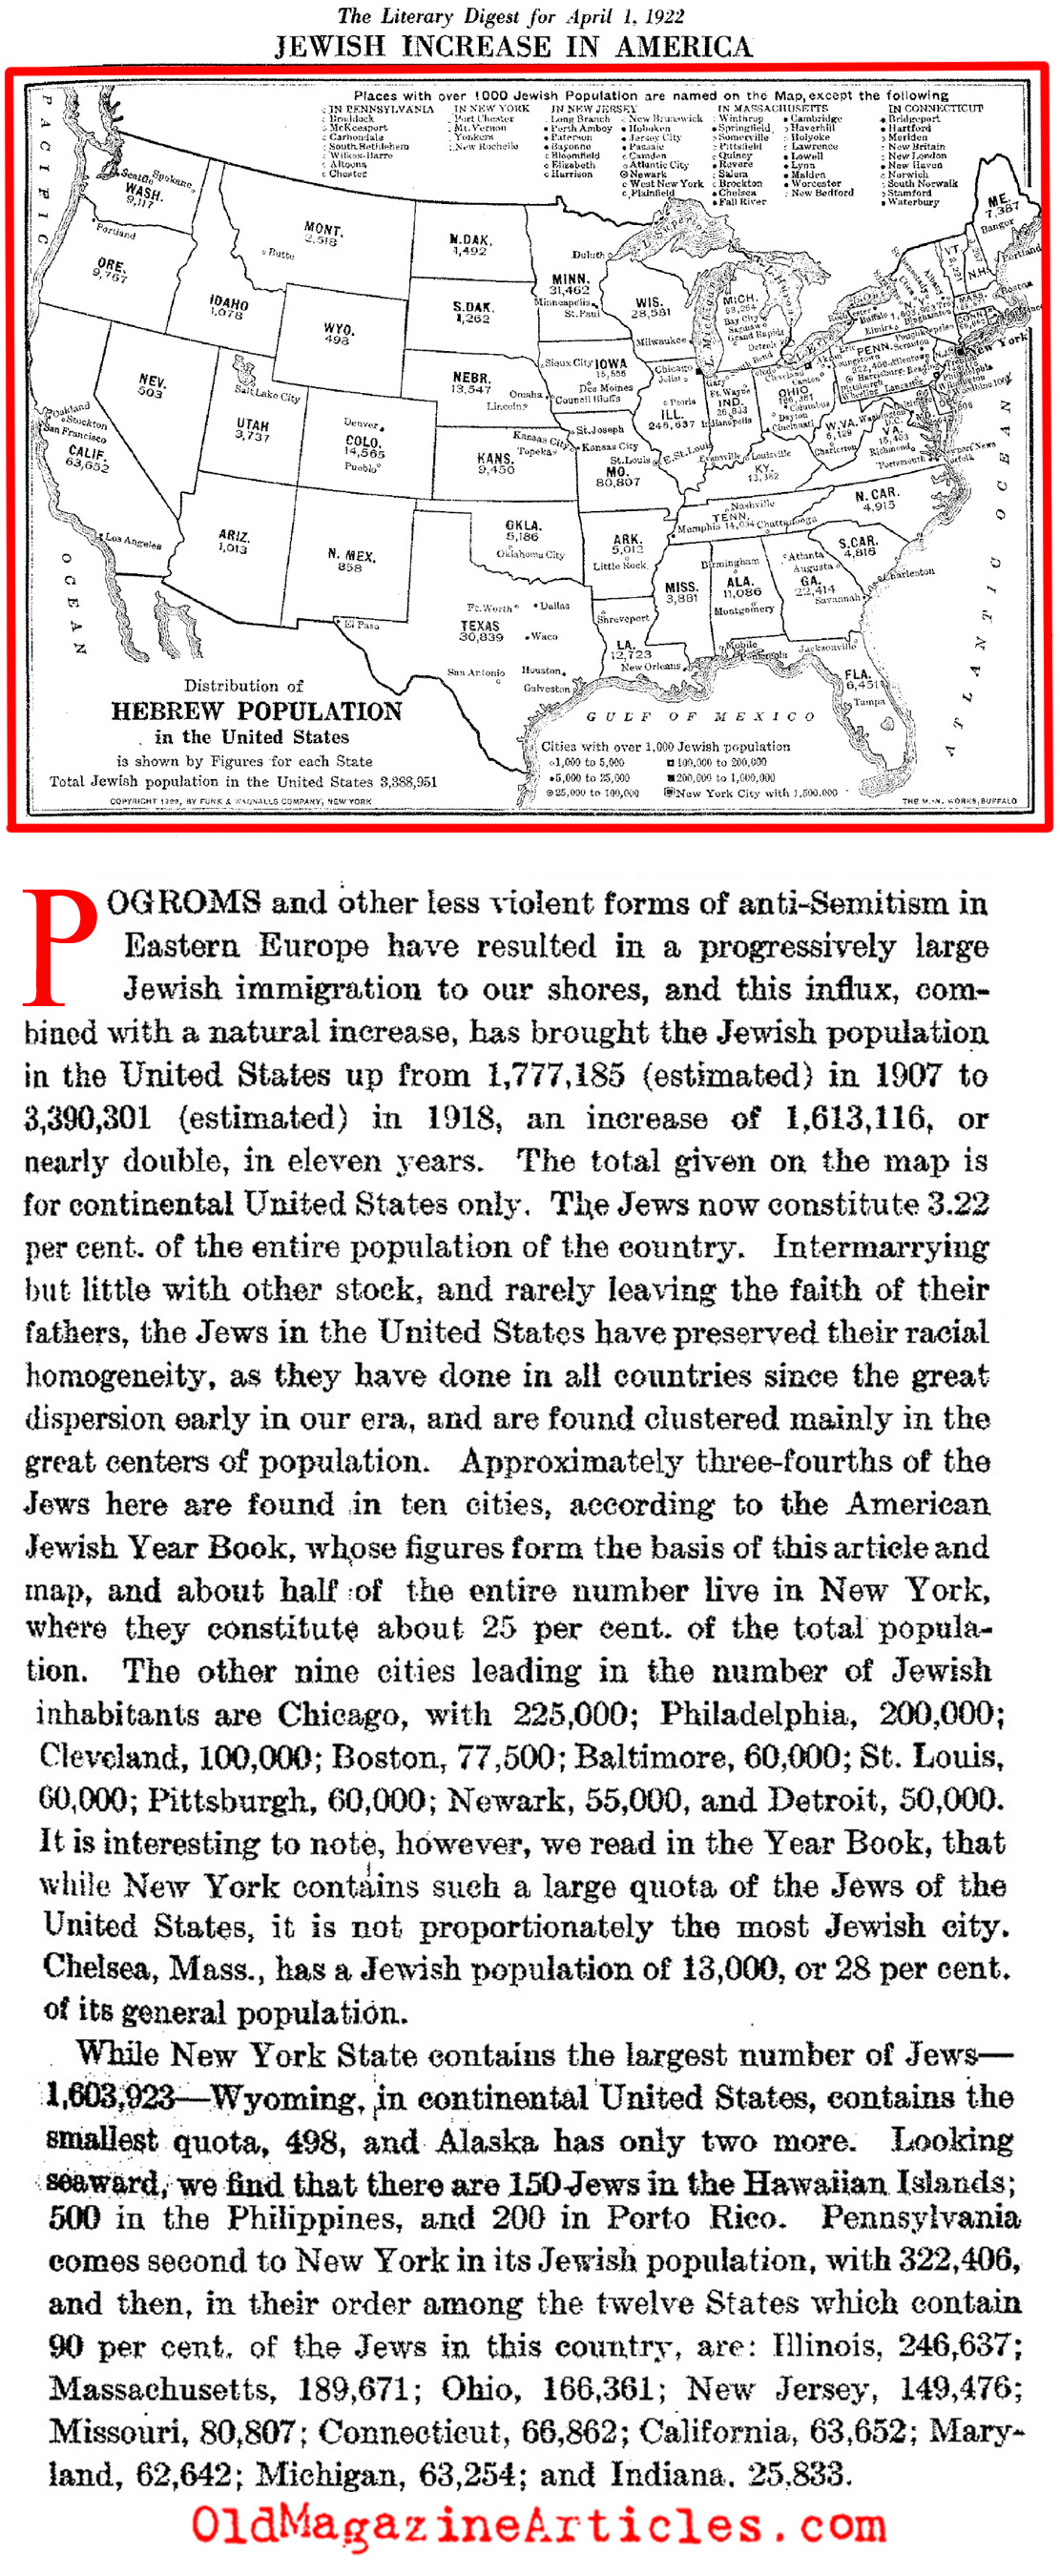 Jewish Population Increase in the U.S.  (The Outlook, 1922)